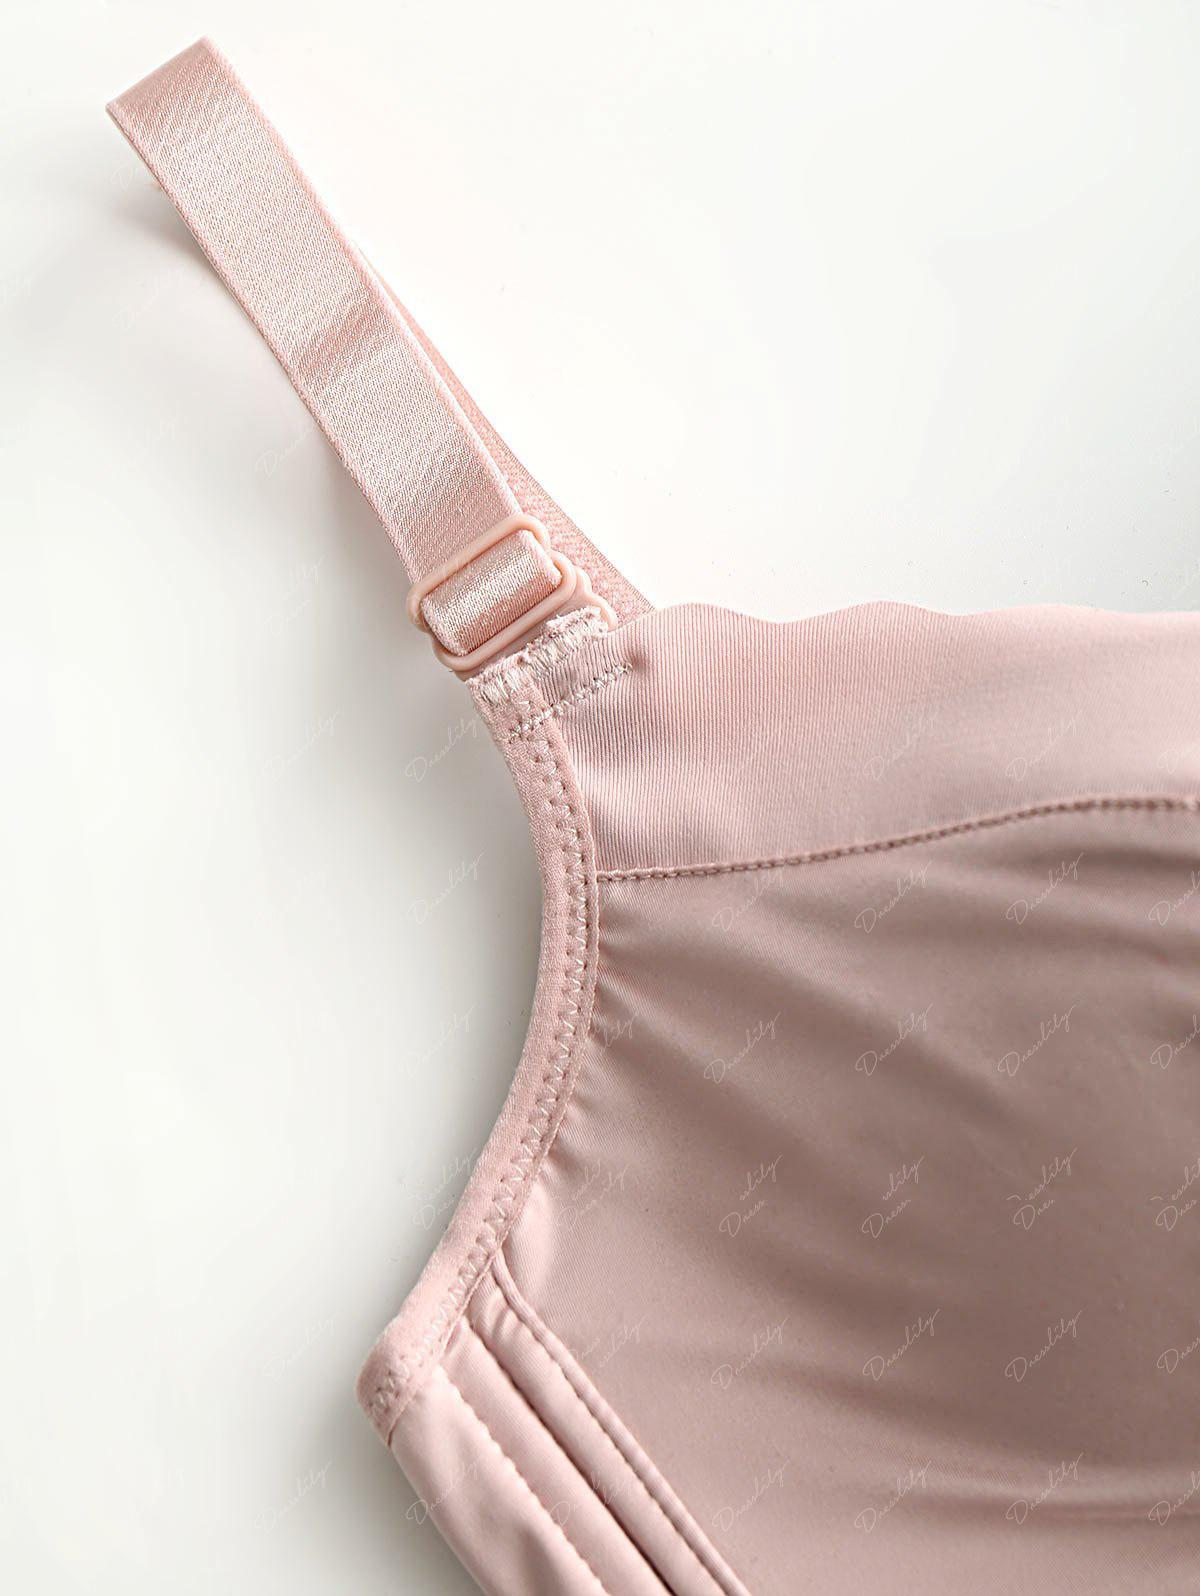 Daily Seamless Push Up Bra - LIGHT PINK 70B